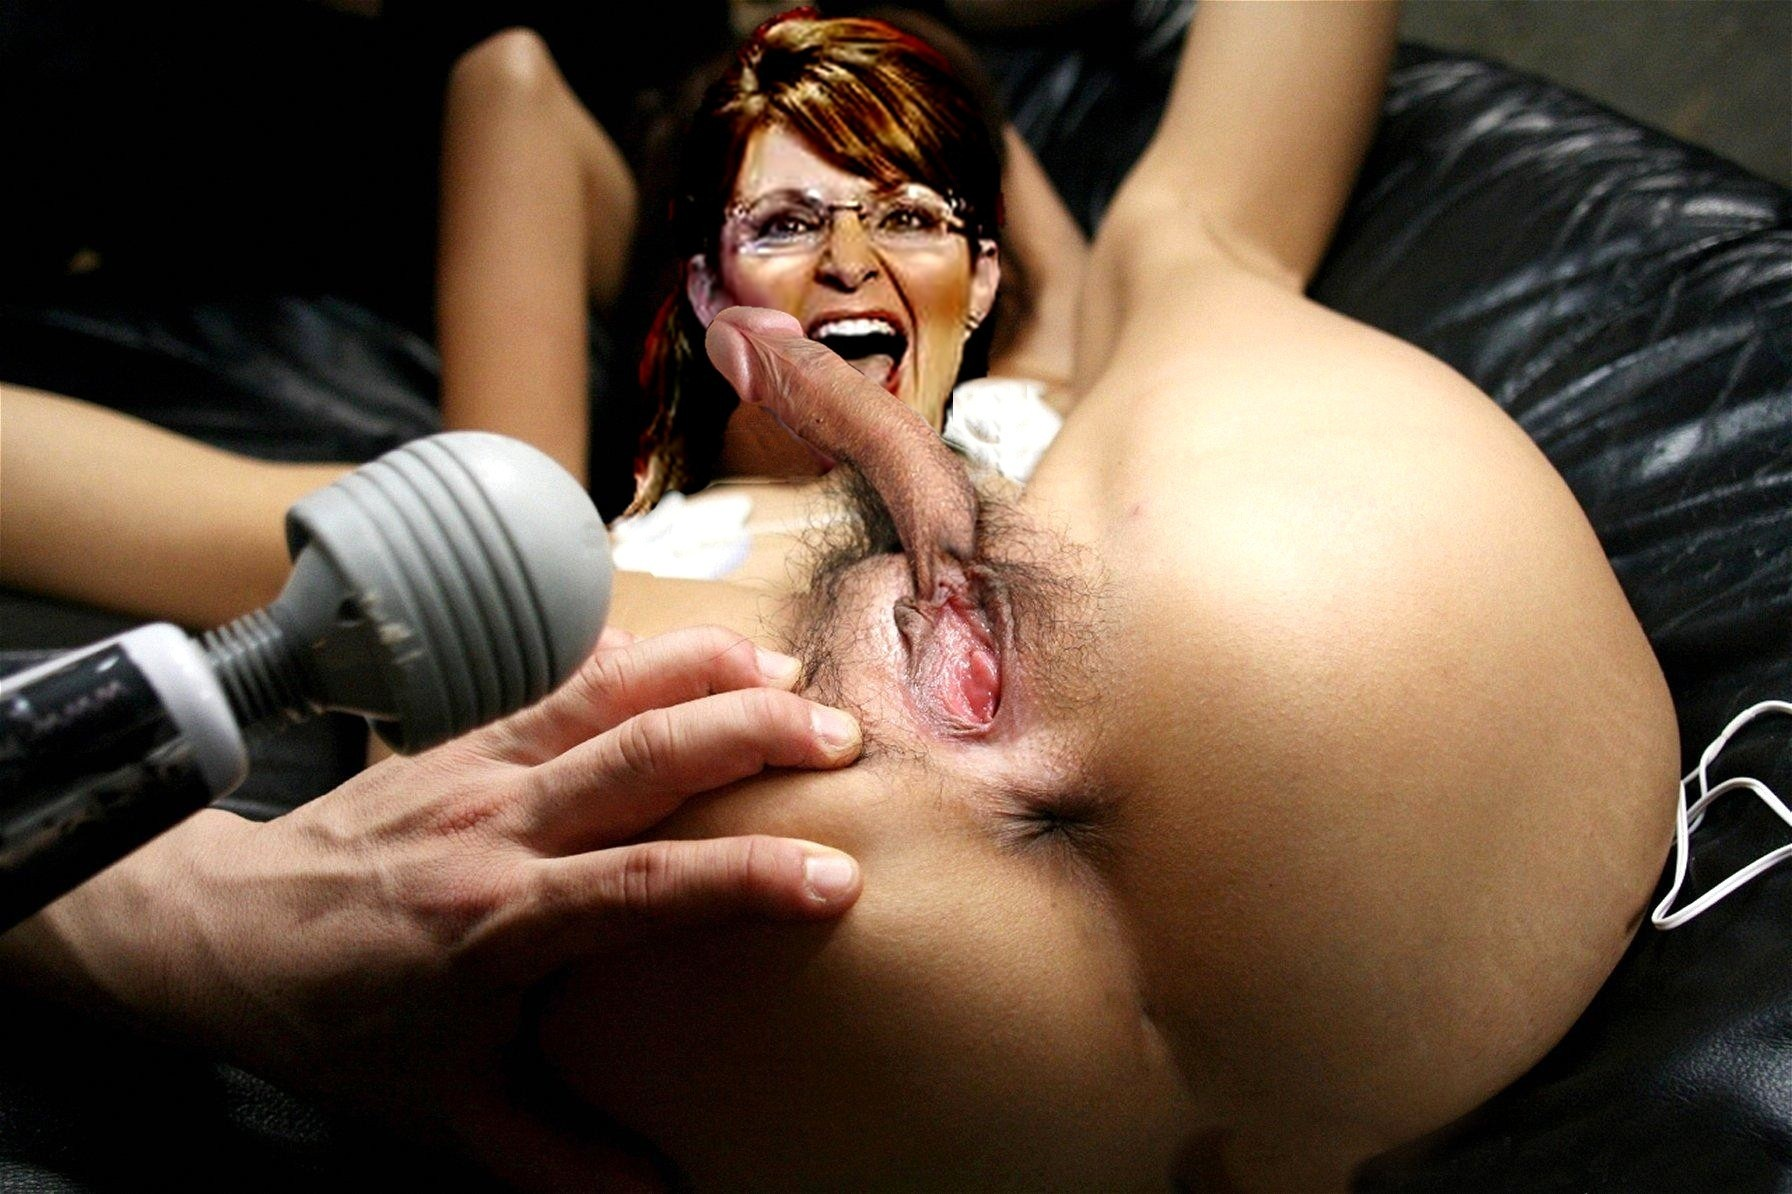 from Jaxon sarah palin sex face